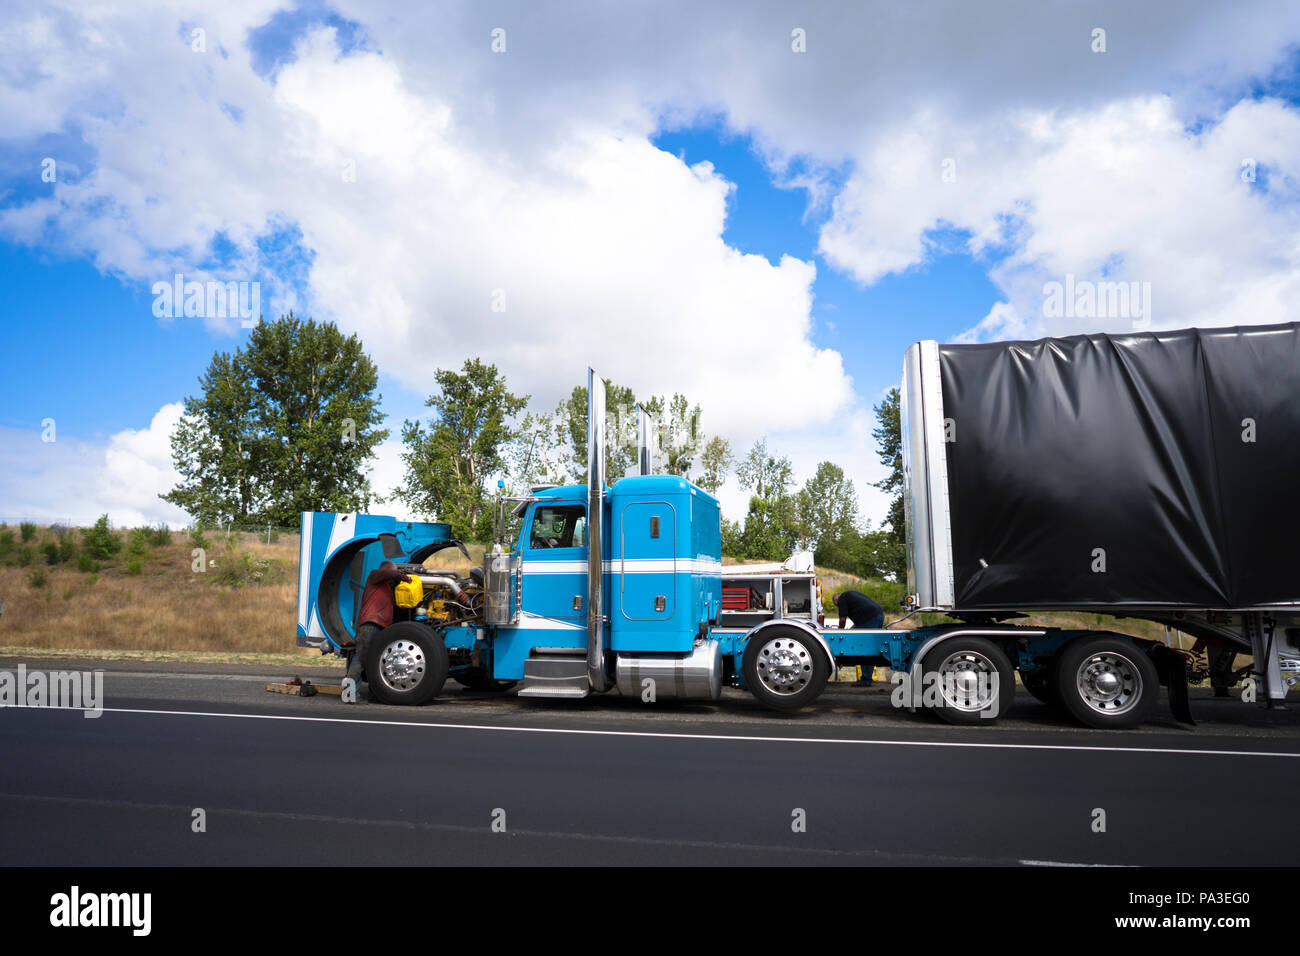 Truck drivers repairing big rig blue bonnet semi truck with open hood breakage occurred during the delivery of the goods and carry covered loaded semi - Stock Image